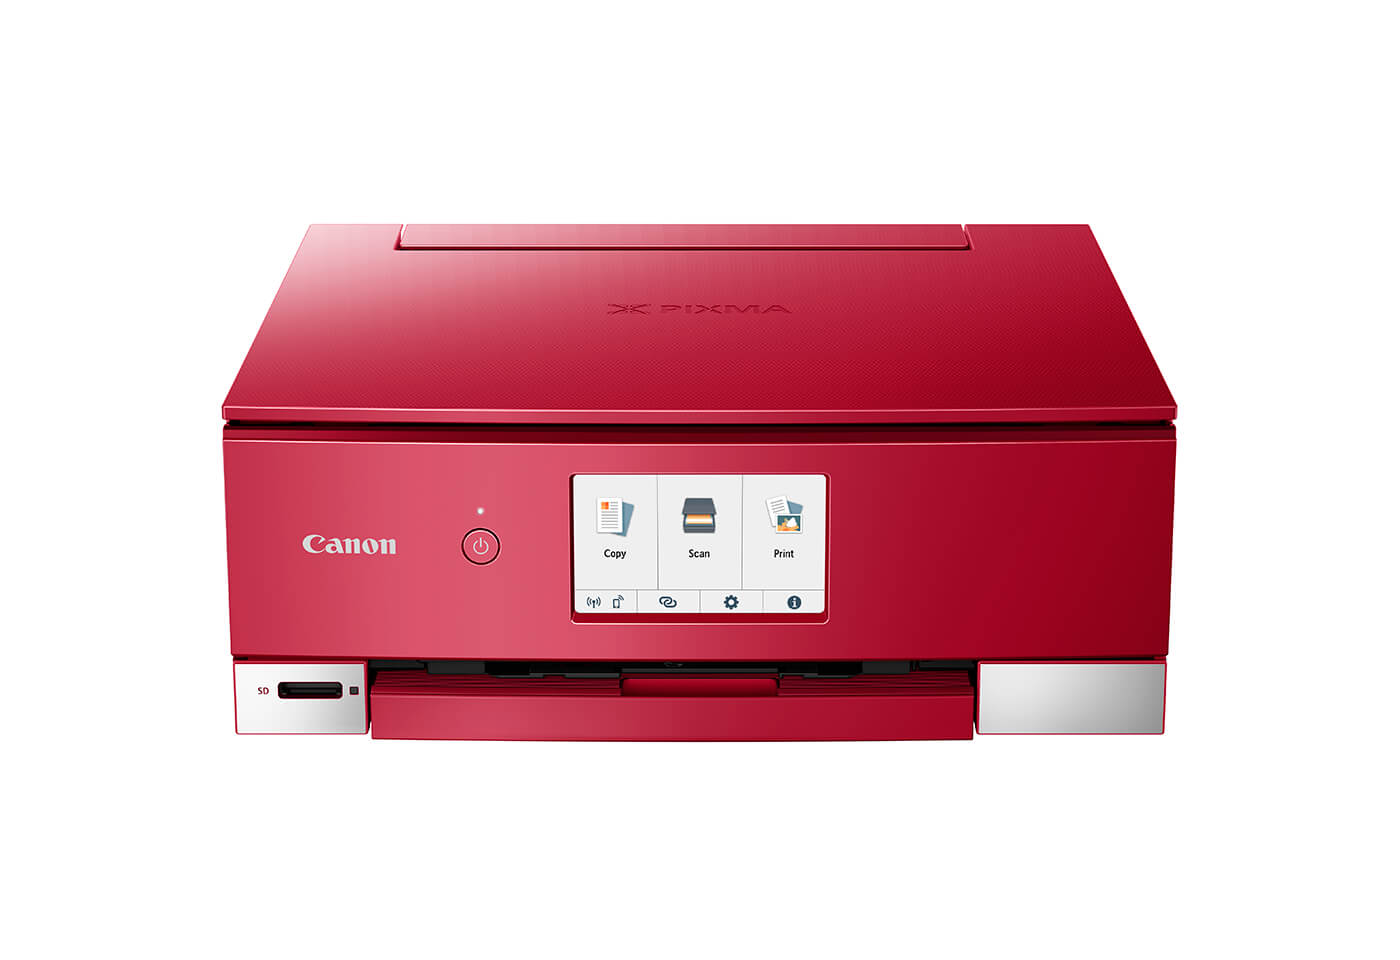 Product image of PIXMA HOME TS8260 in red